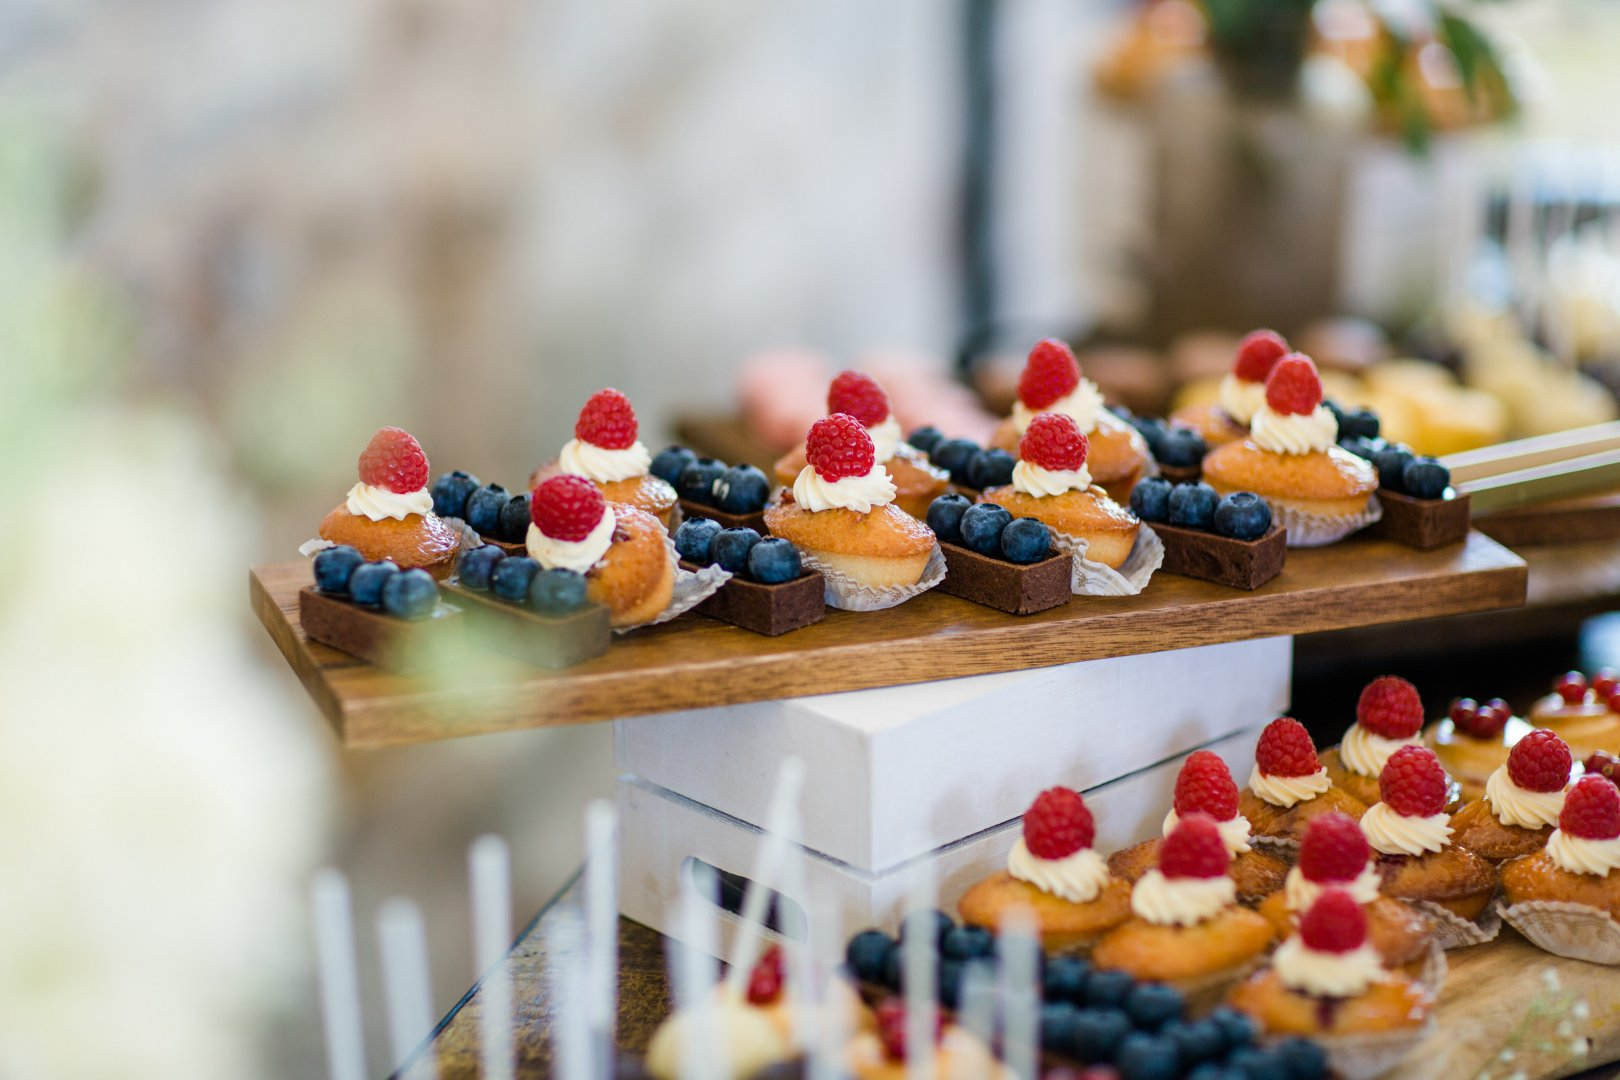 Pâtisserie Food Sweetness Petit four Cuisine Canapé Pastry Dessert Finger food Baking Brunch Dish Culinary art Baked goods appetizer Hors d'oeuvre Bakery Games Delicacy Buffet Miniature Taste Ingredient